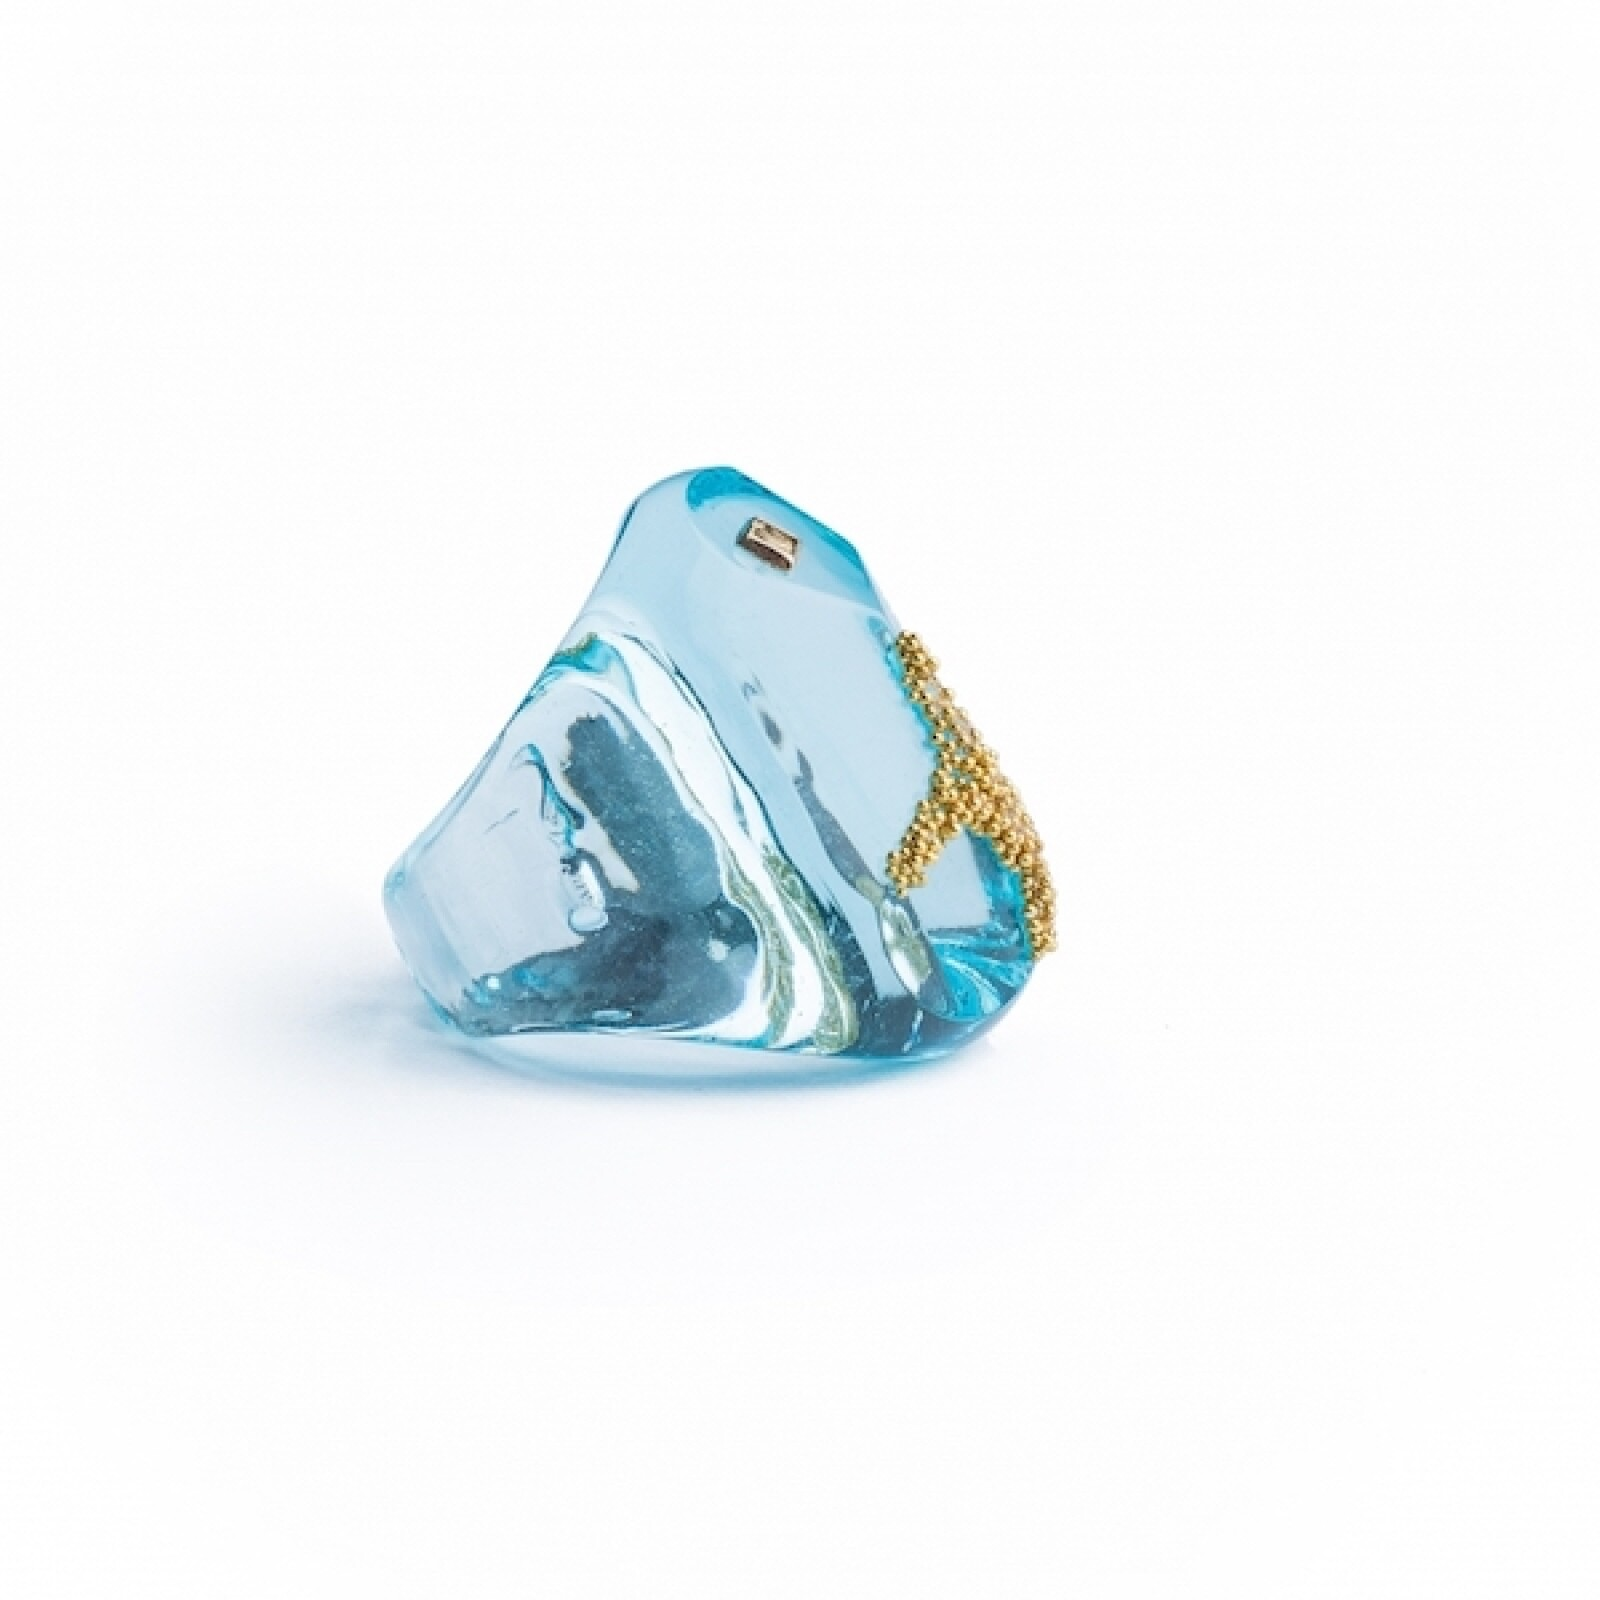 NAYIBE WARCHAUSKY FACETE PARADISE RING